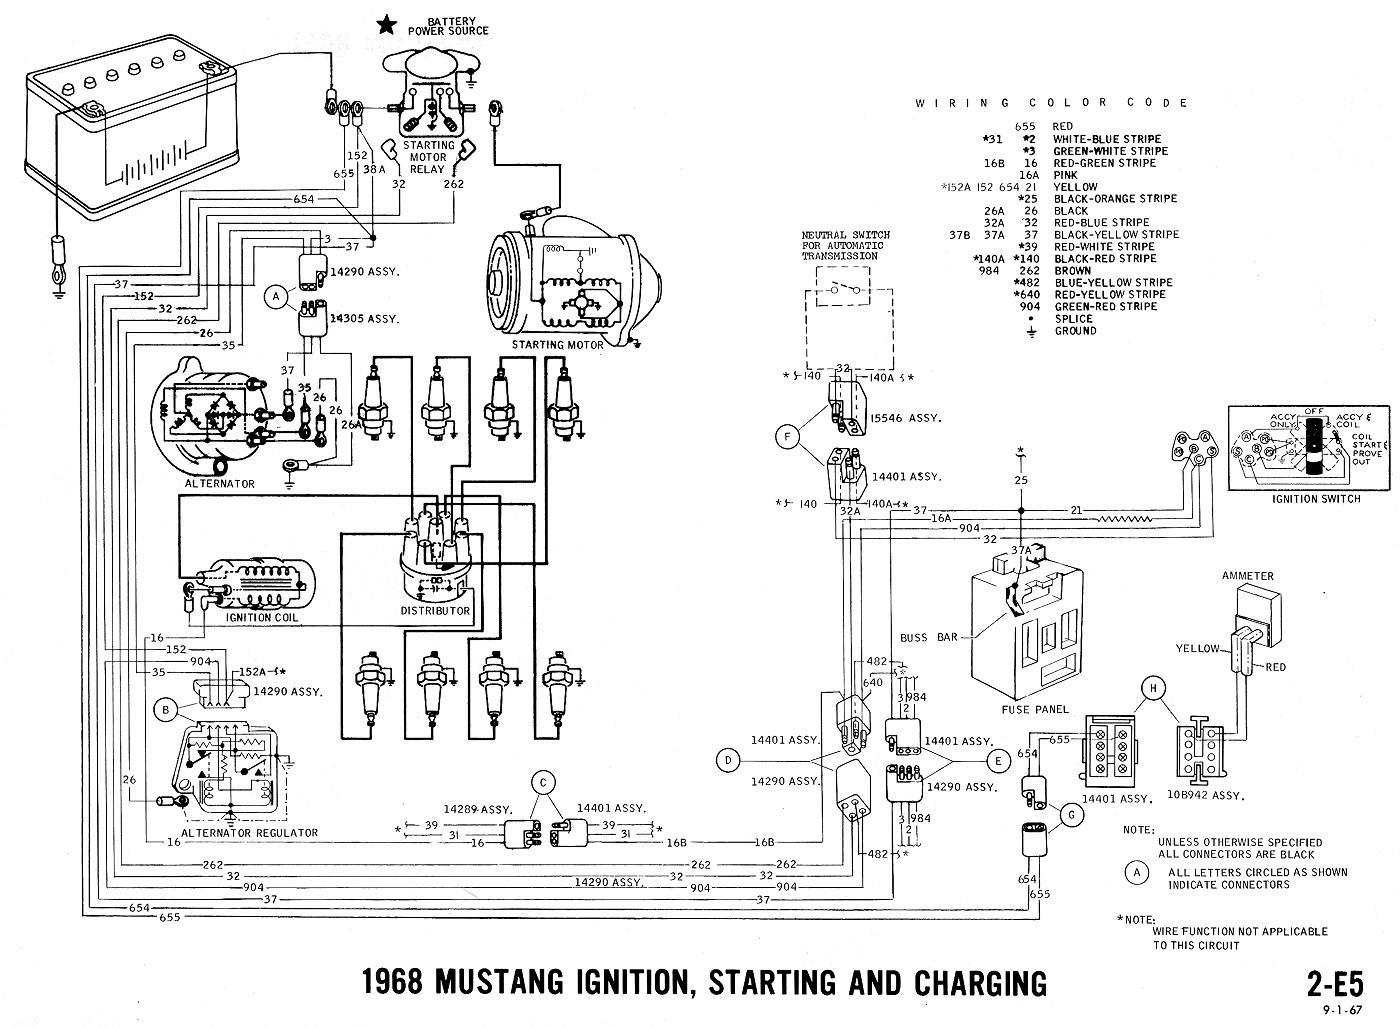 1965 mustang ignition switch wiring diagram Collection-67 mustang ammeter wiring diagram 67 circuit diagrams wire center u2022 rh jamairline co 1967 Ford Mustang Starter Neutral Switch Install 1965 Mustang 1-q